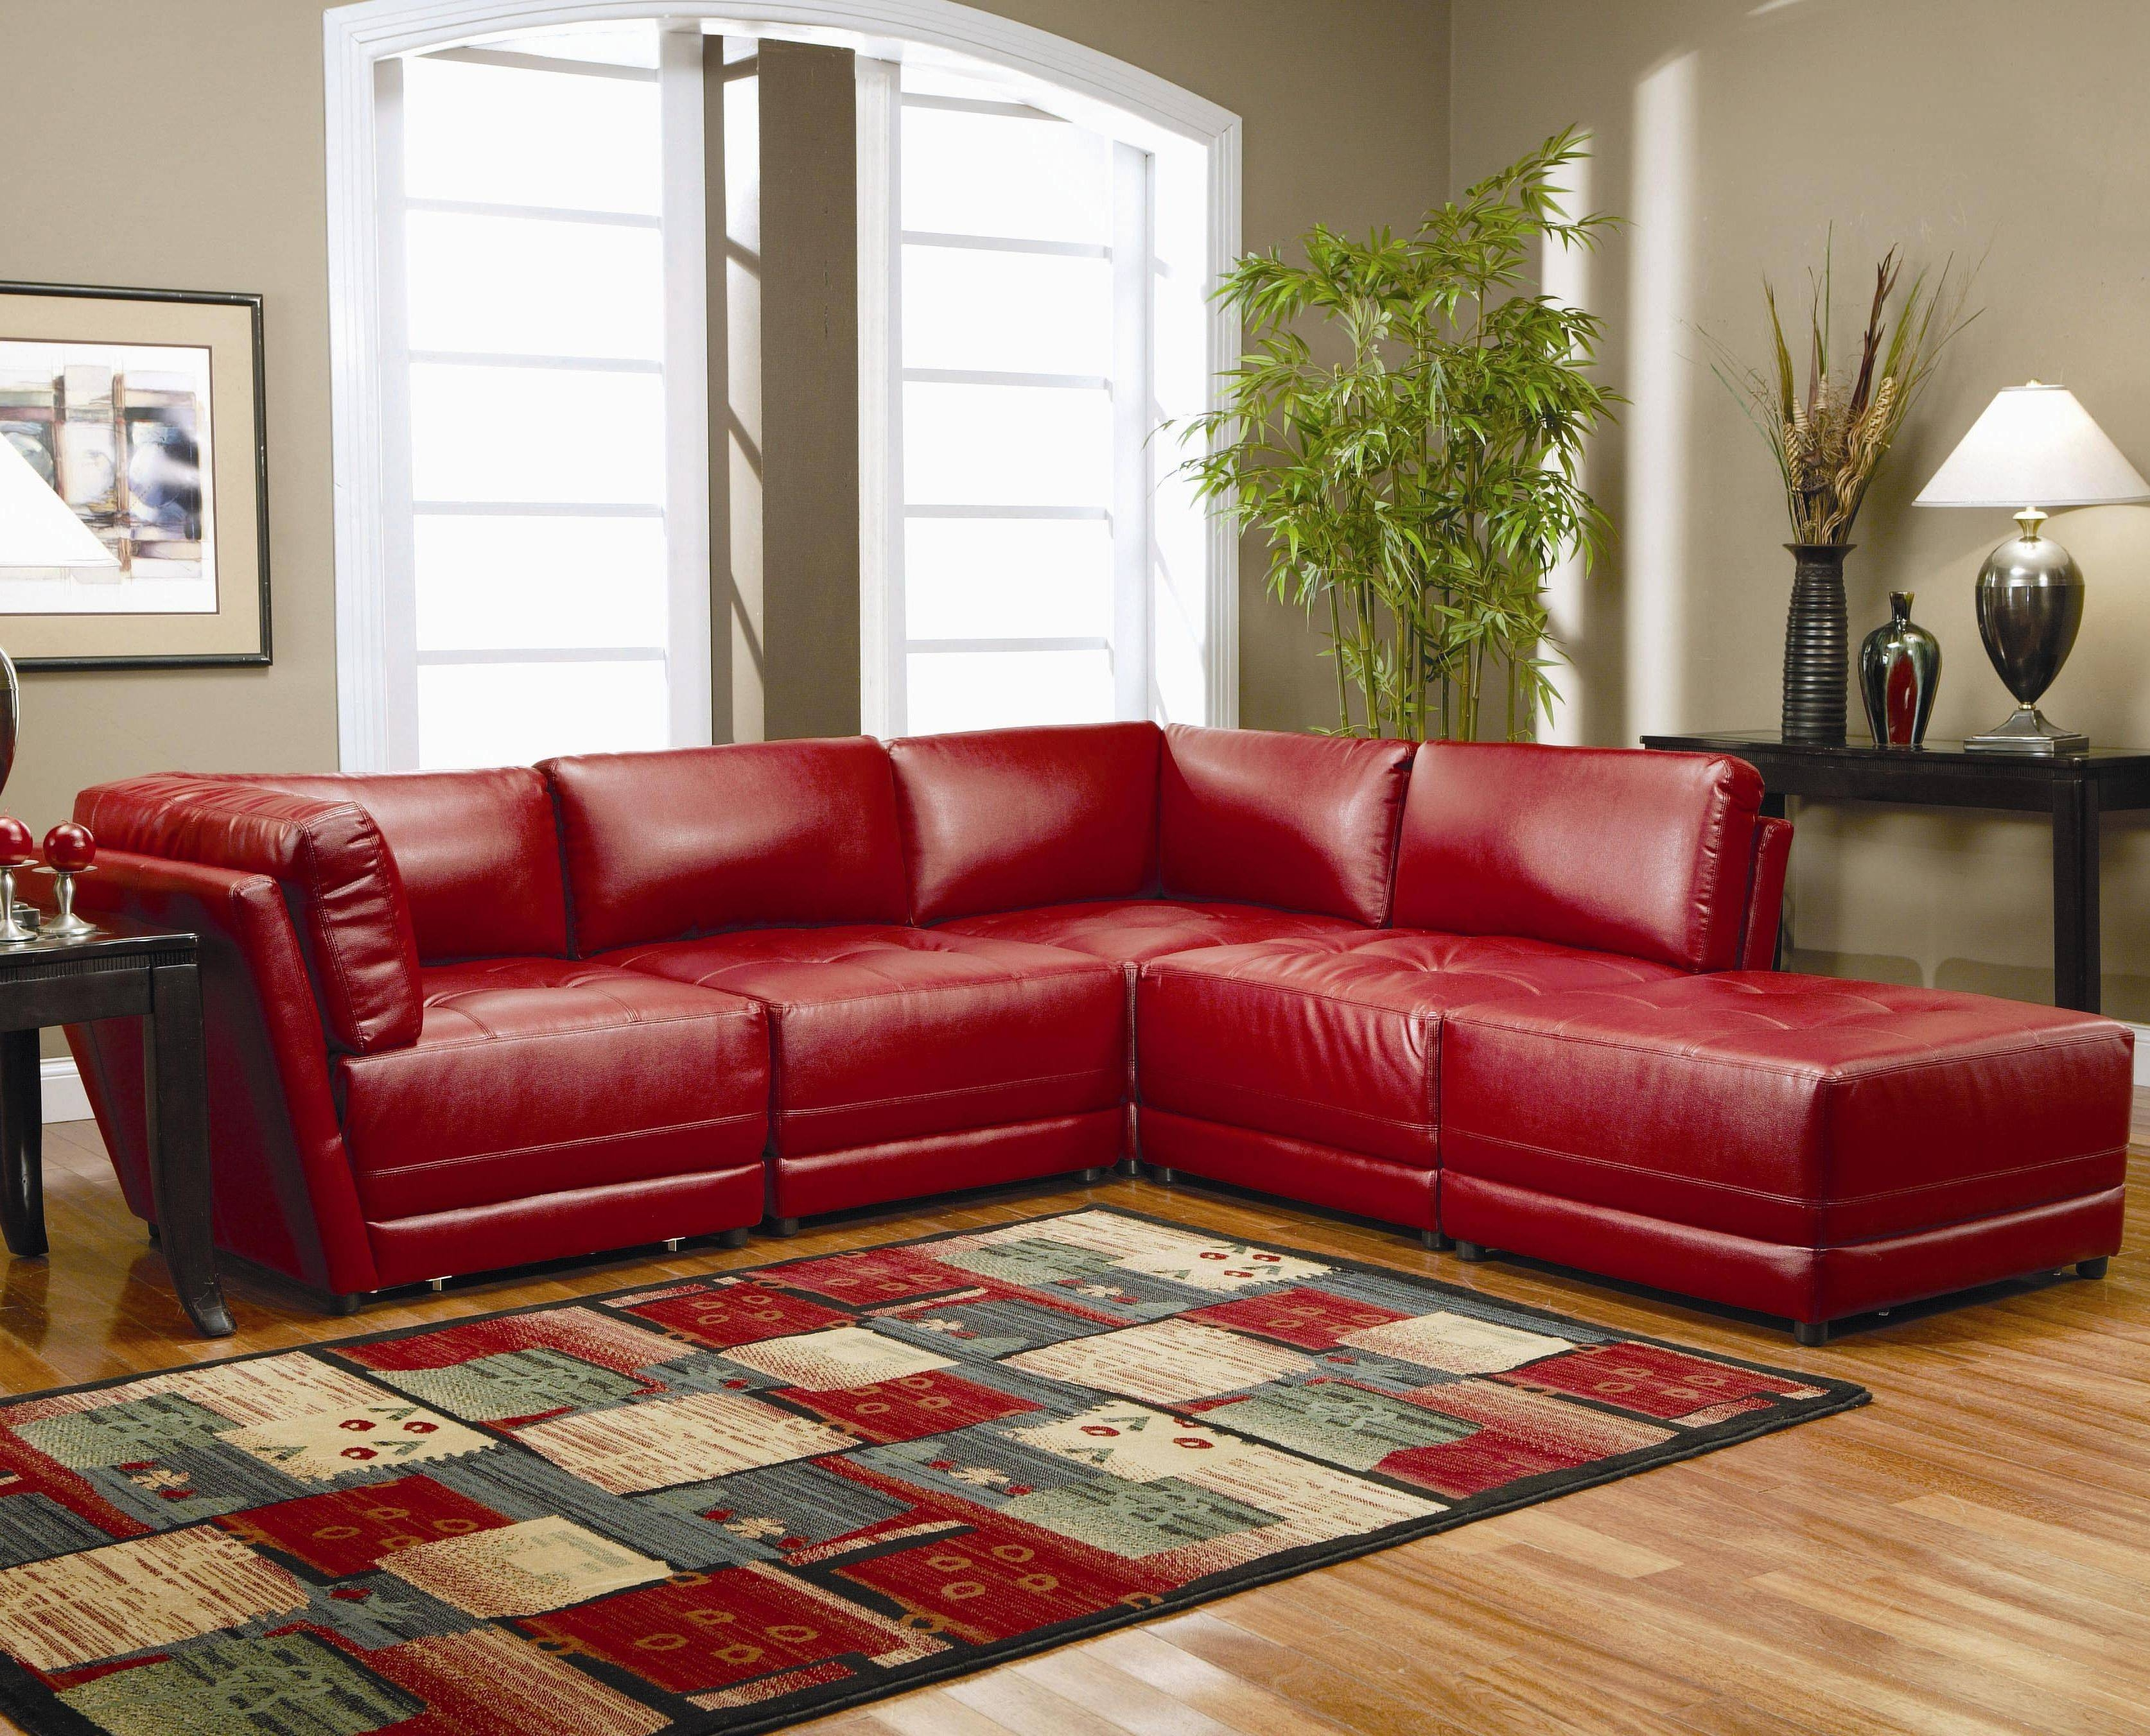 Red Sofas Cheap | Tehranmix Decoration inside Cheap Red Sofas (Image 20 of 30)